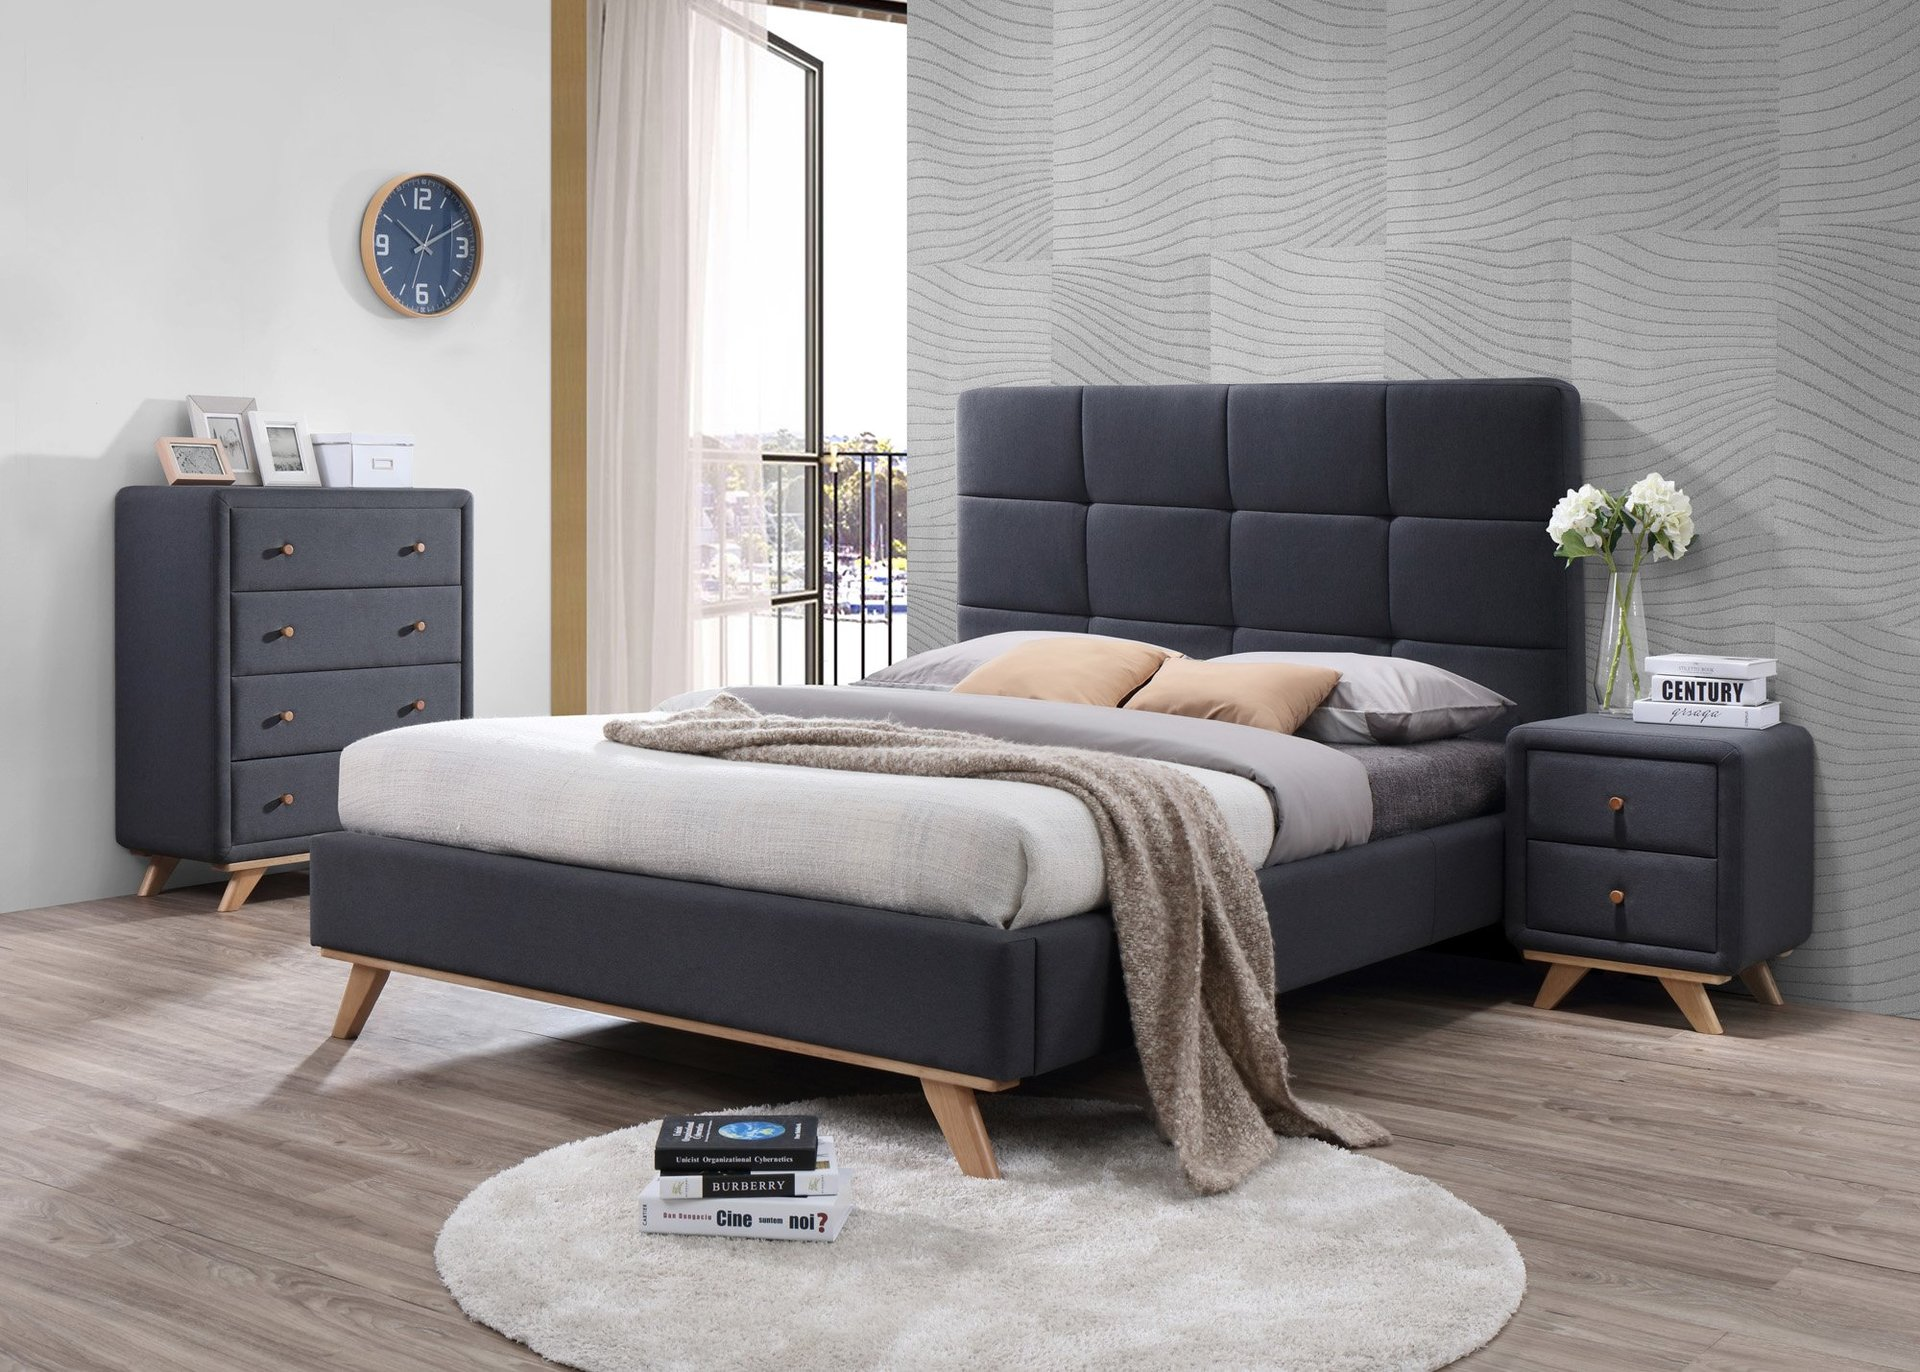 bed cross chair laminate ideas coupled marble sets wonderful furniture purple bedroom leg nightstand and silver decorating wood distressed single design flooring cushion leather white master